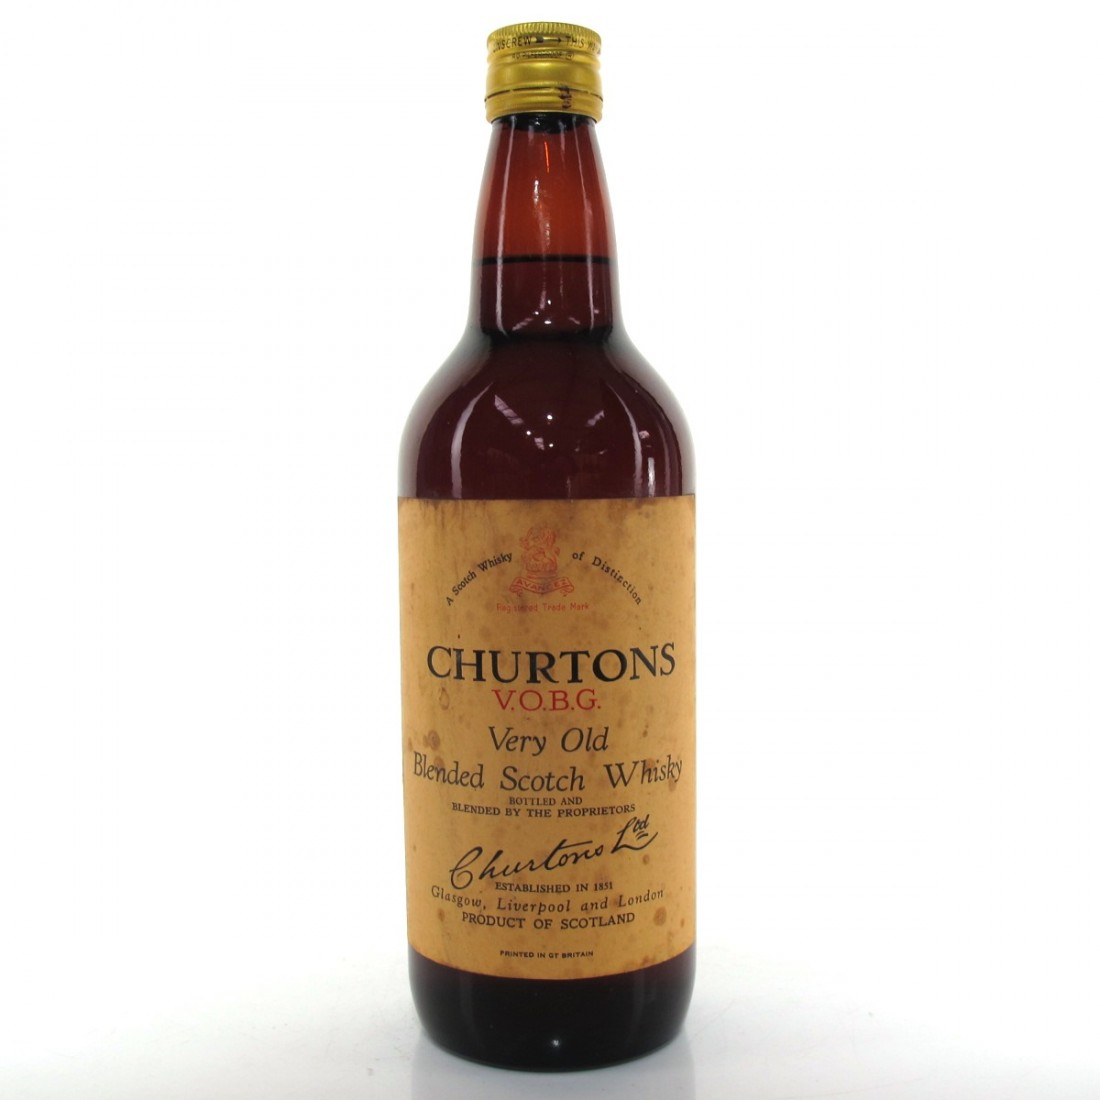 Churtons Very Old 1960s